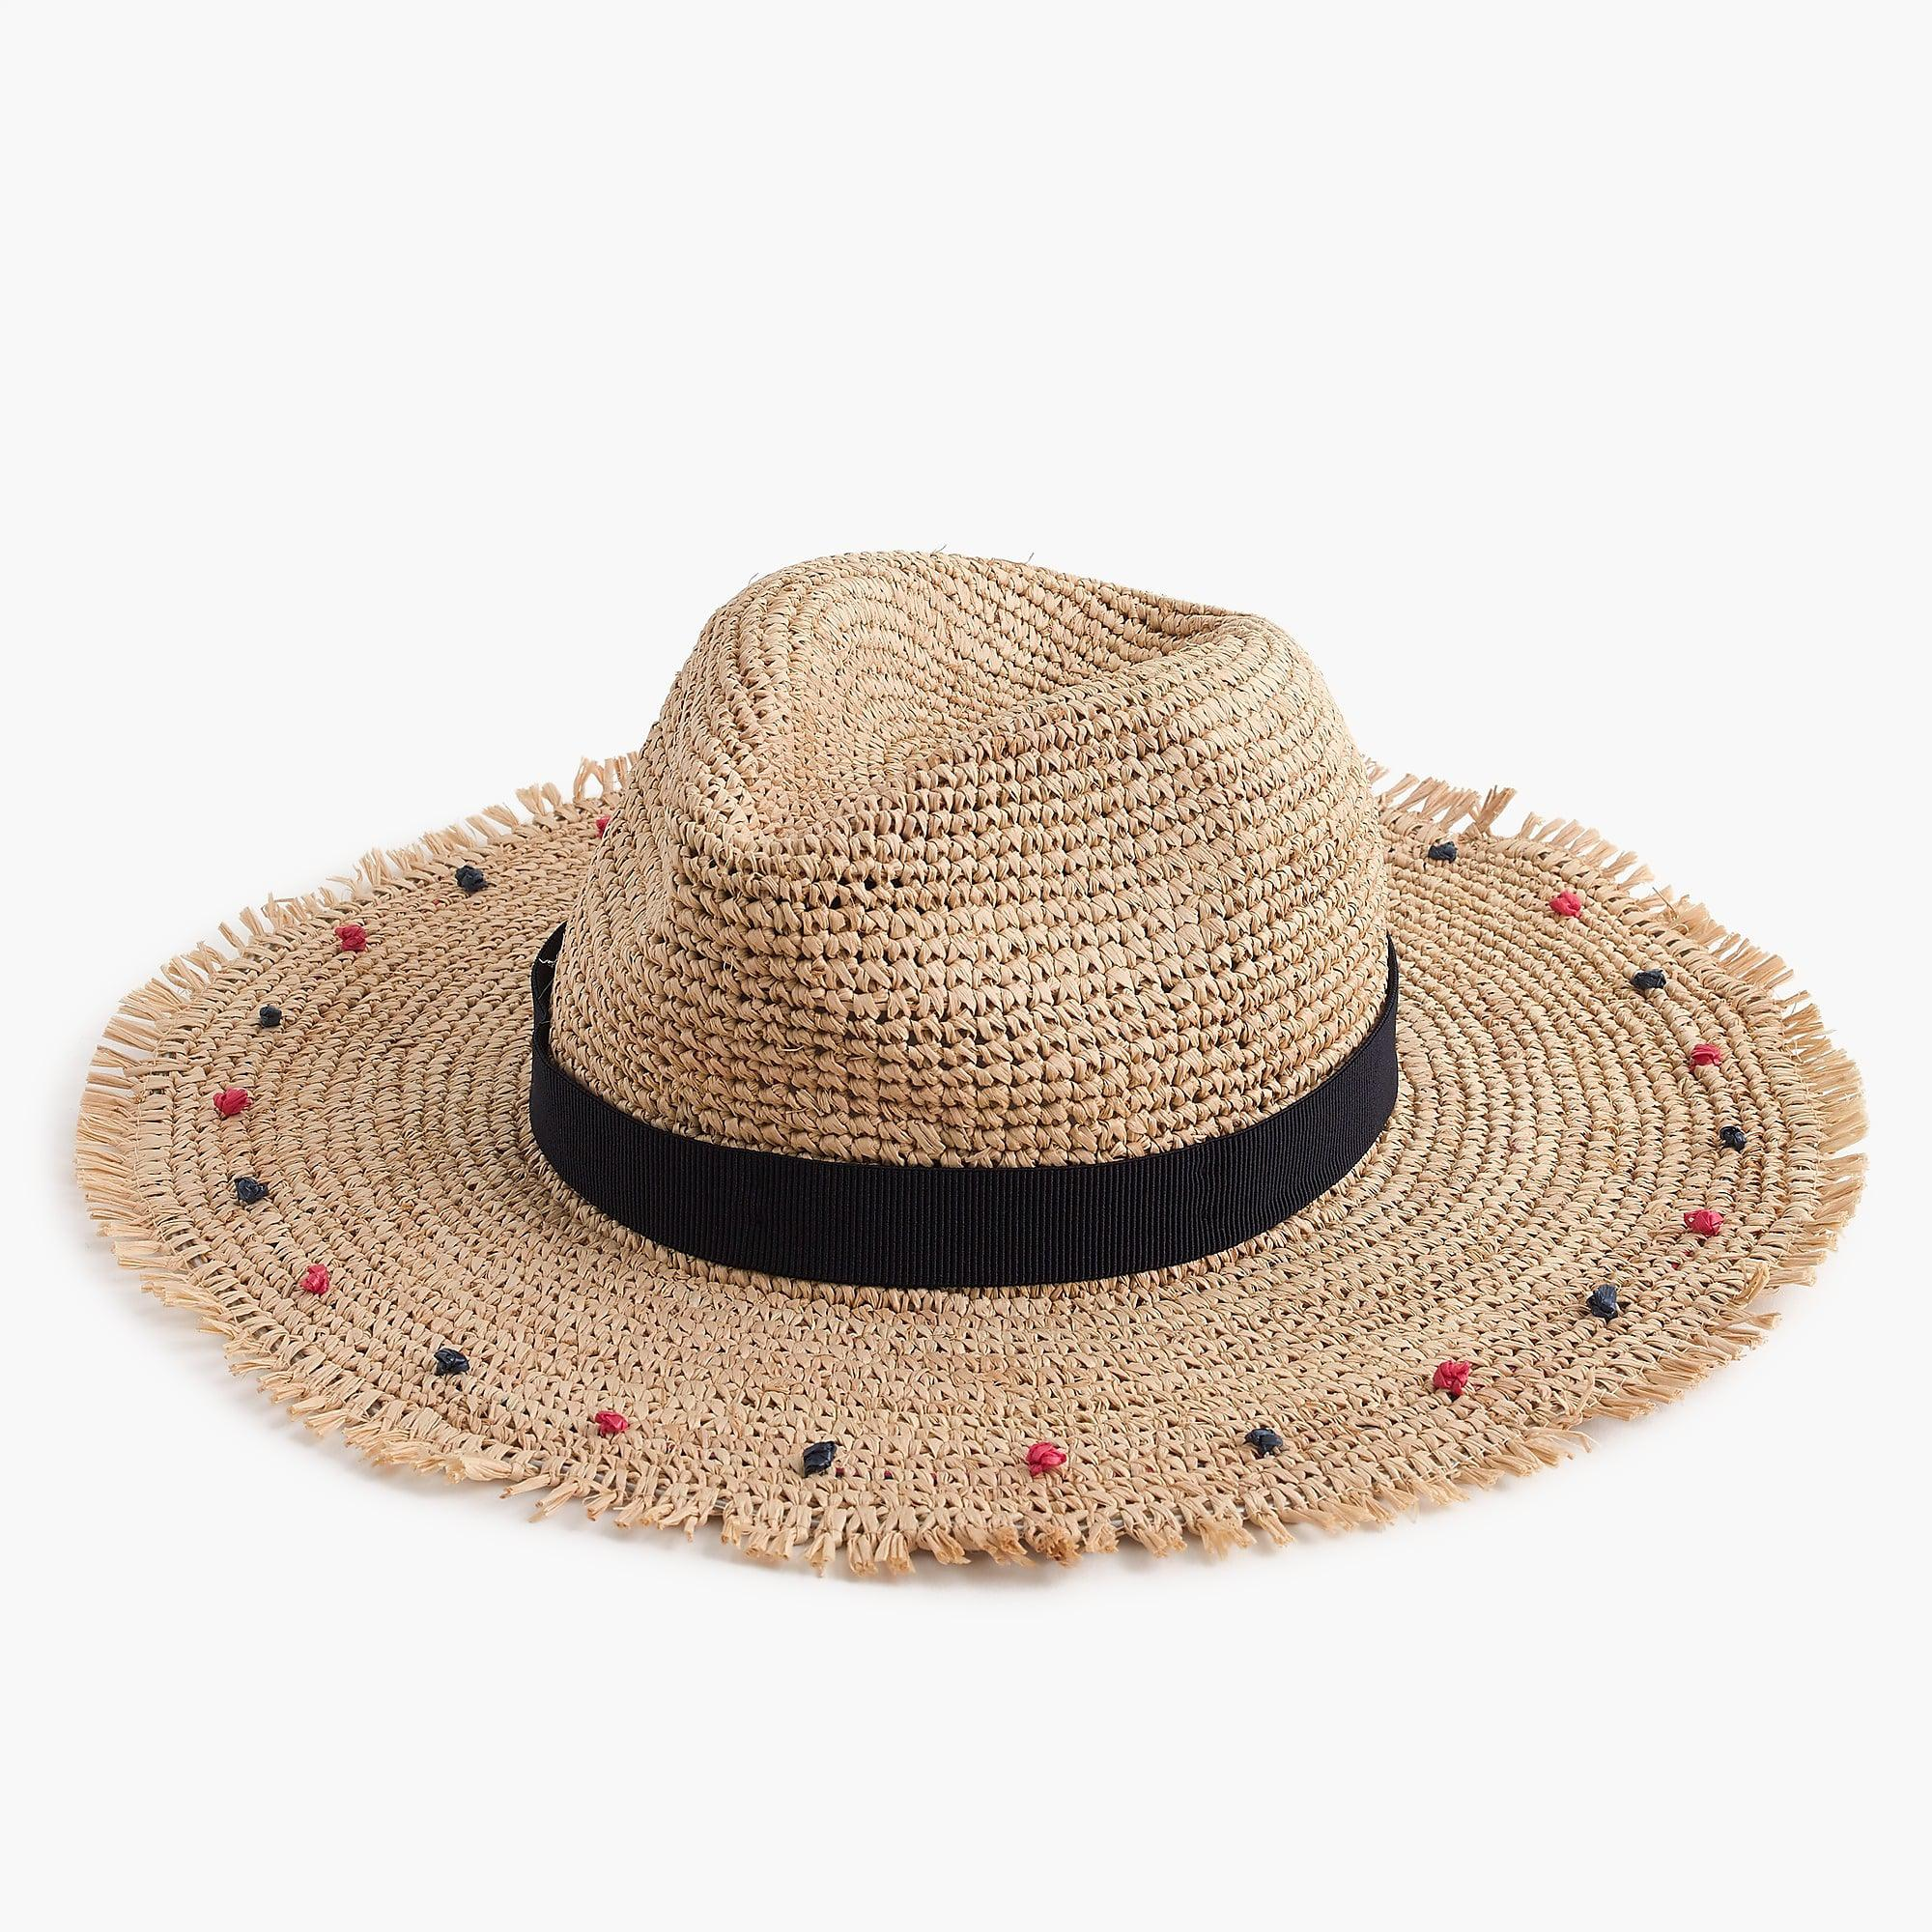 4c5c95046afc5 J.Crew - Blue Embellished Packable Straw Hat - Lyst. View fullscreen